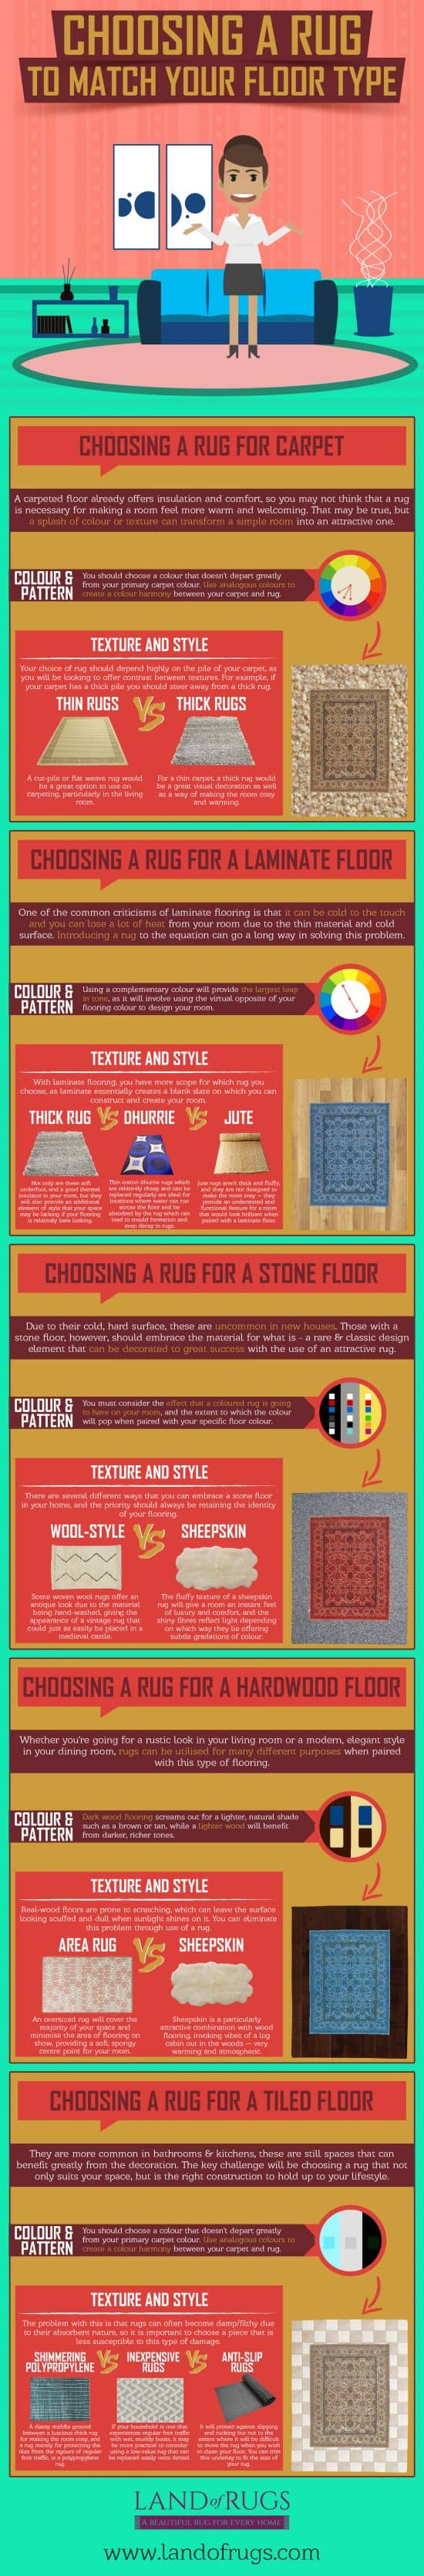 CHOOSING A RUG TO MATCH YOUR FLOOR TYPE - matching rugs with floors